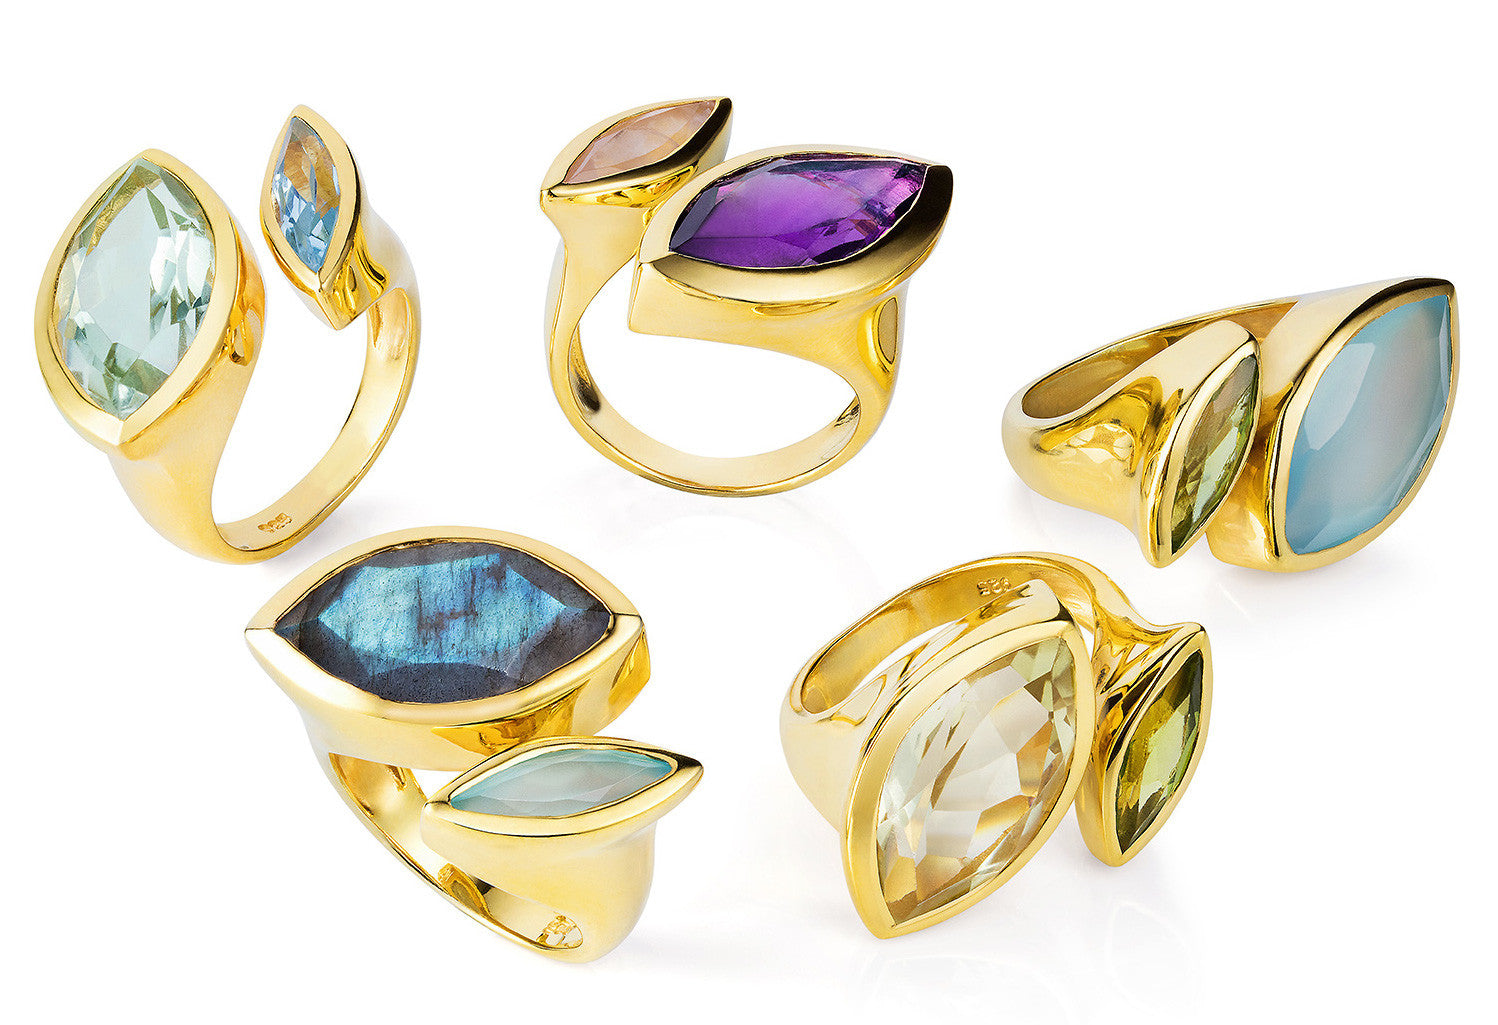 Different Gold Vermeil Rings, Citrine and Aqua Chalcedony gemstones, minimalist, geometric design